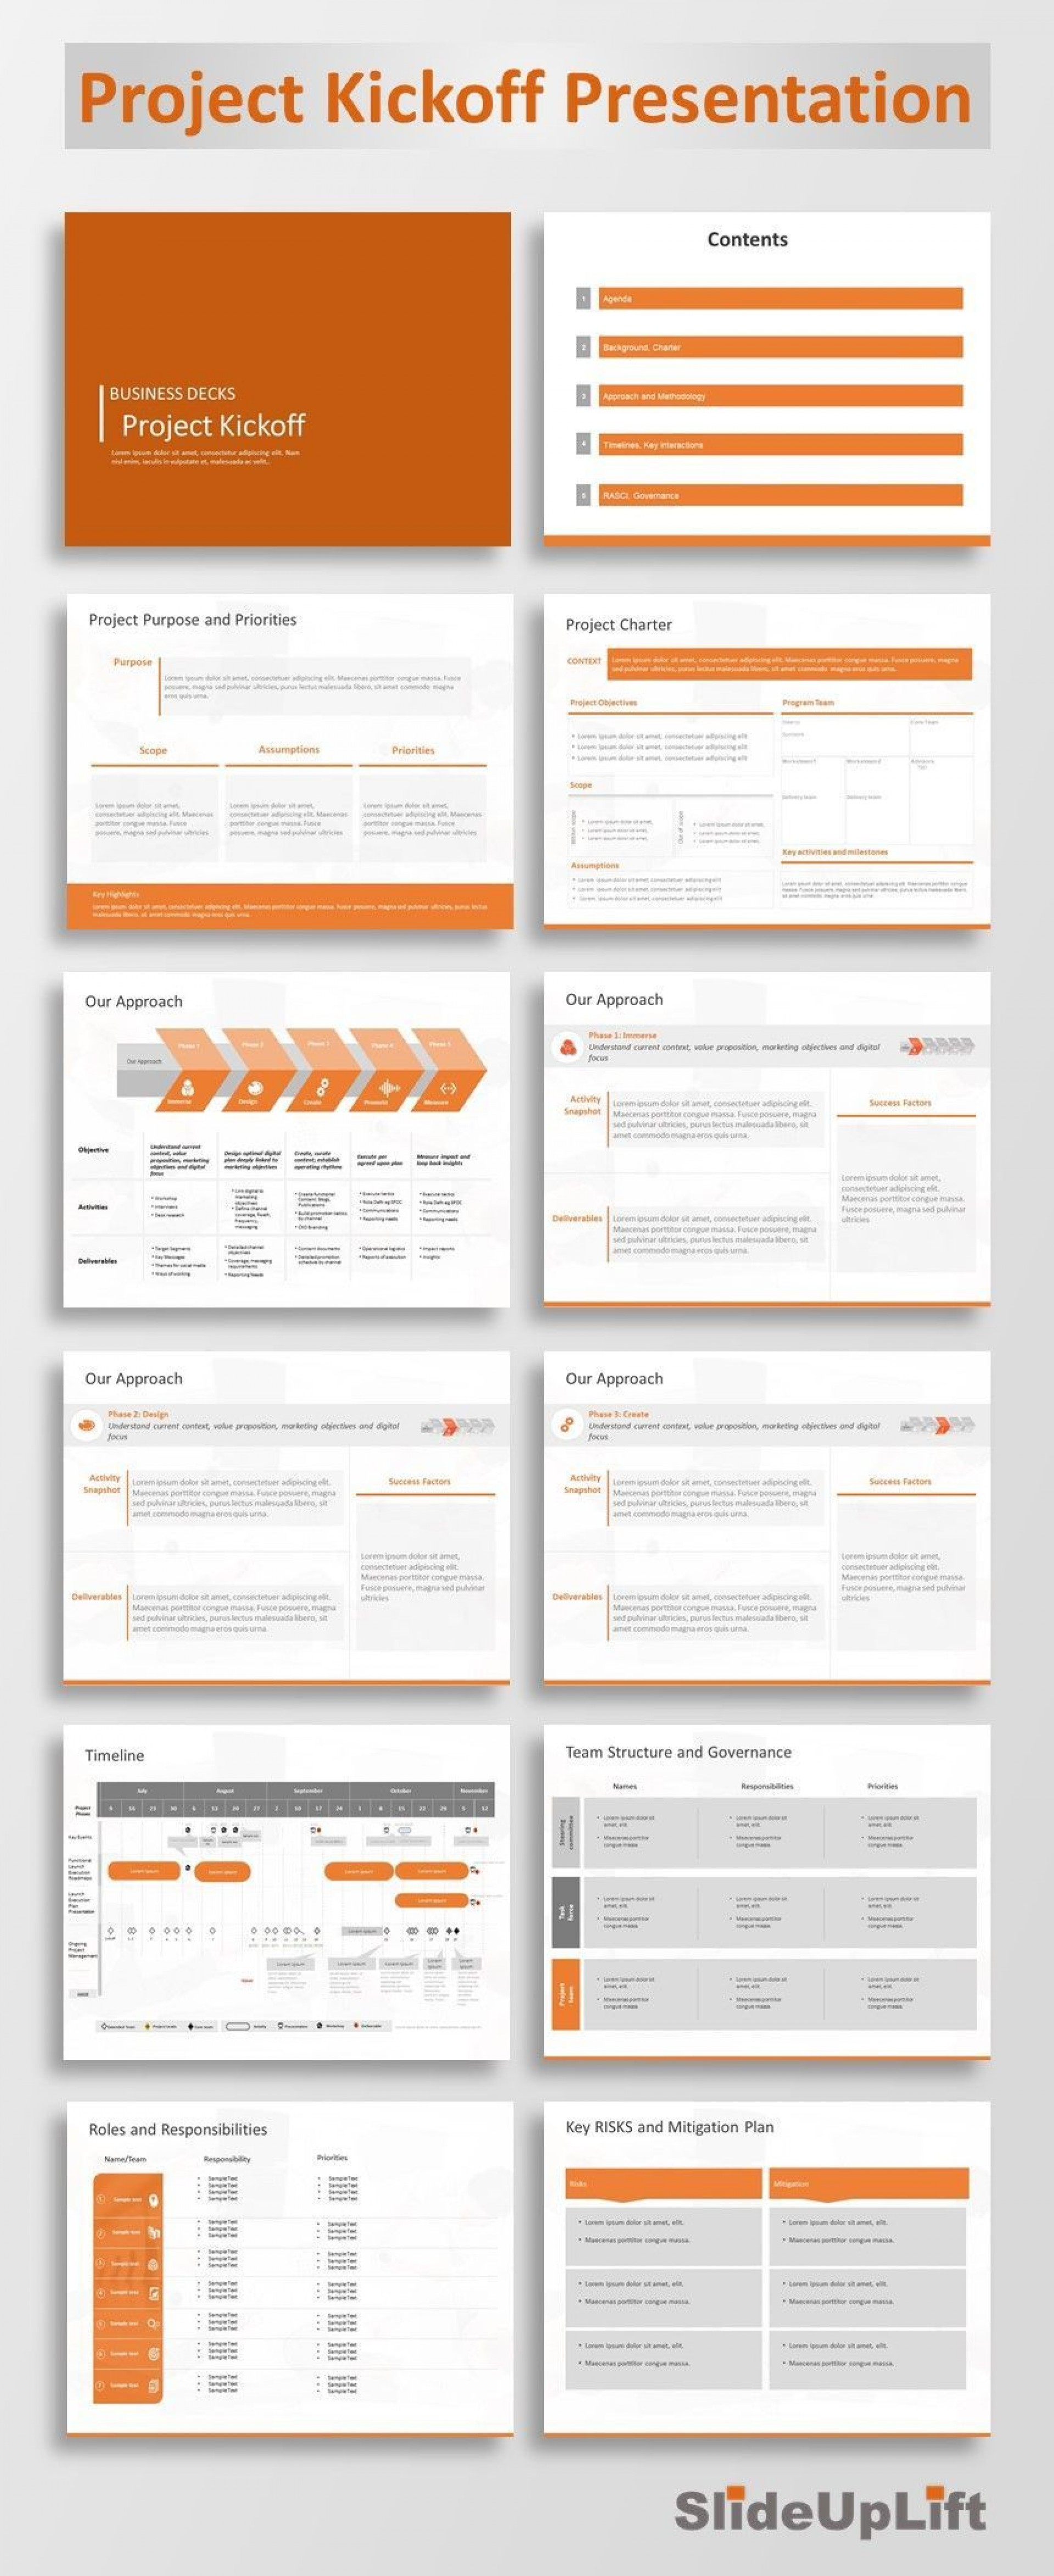 003 Fascinating Project Kick Off Template Ppt Idea  Meeting Management Kickoff1920